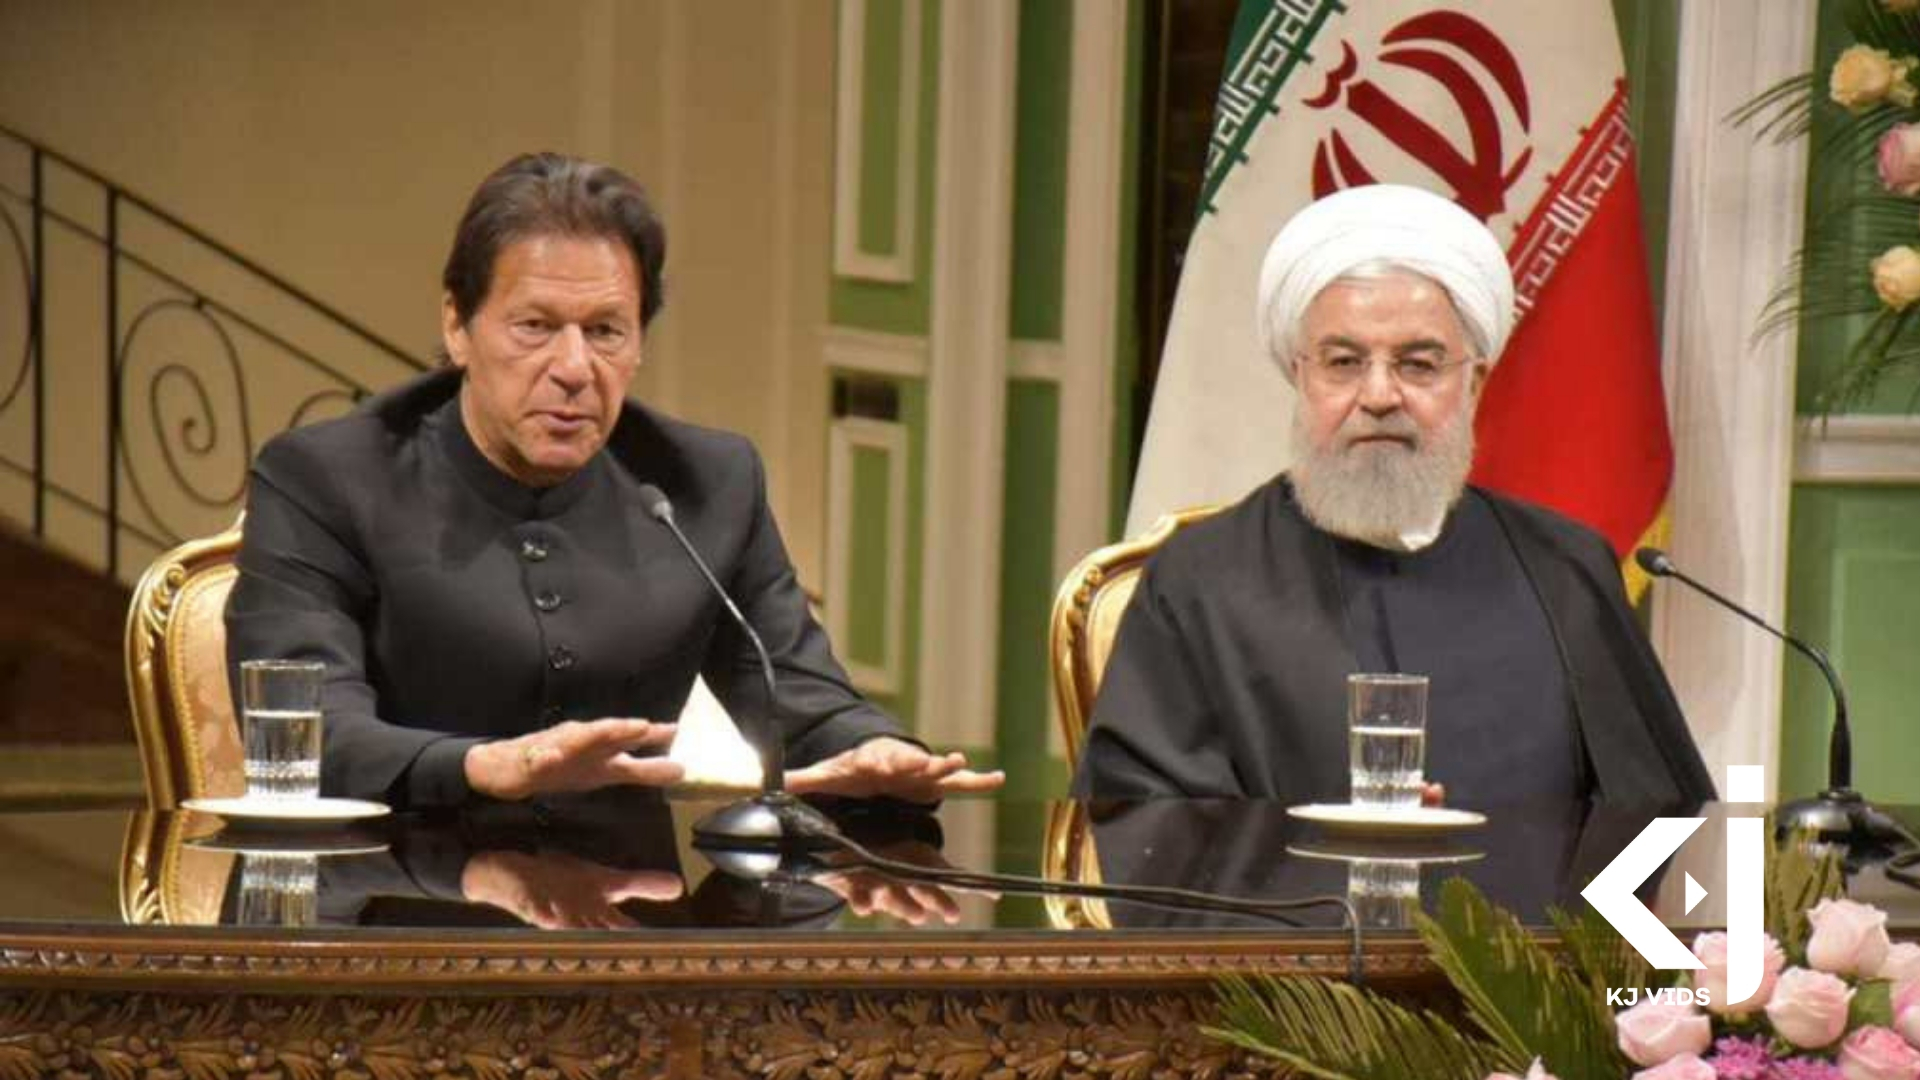 Is the Kashmir issue bringing Iran and Pakistan together? 5 Geopolitical Effects You Need to Know